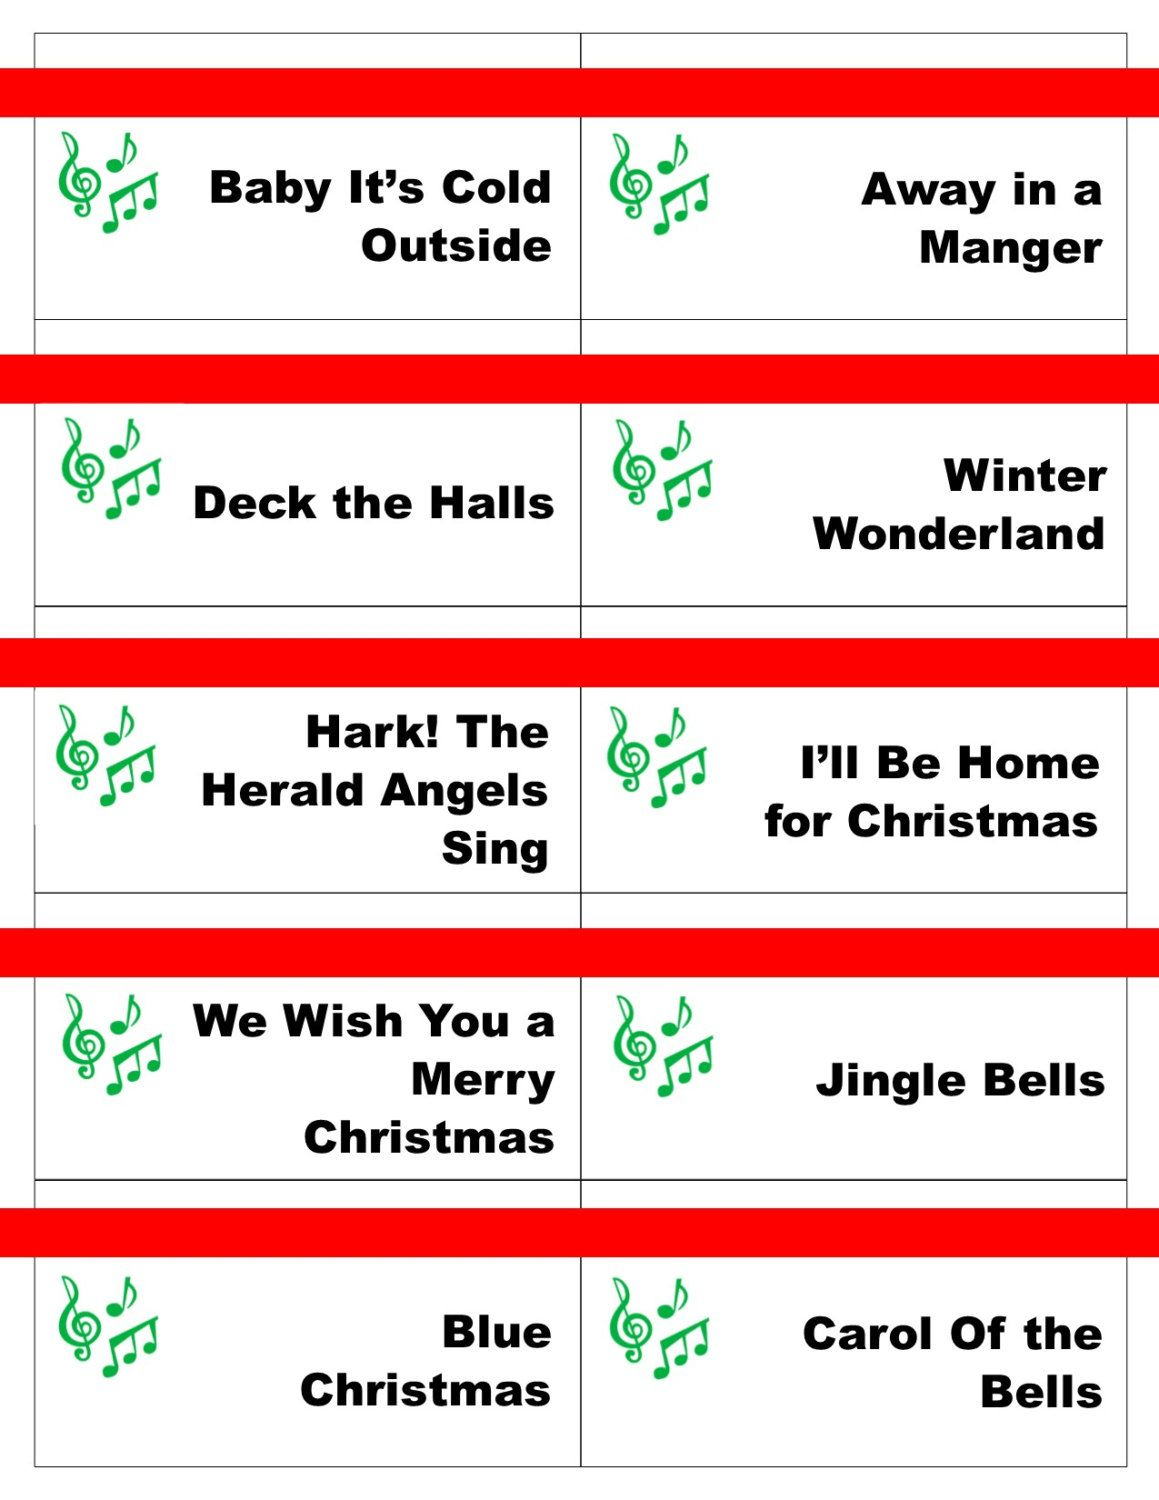 Printable Christmas Carol Game Cards For Pictionary Or - Free Printable Christmas Pictionary Words